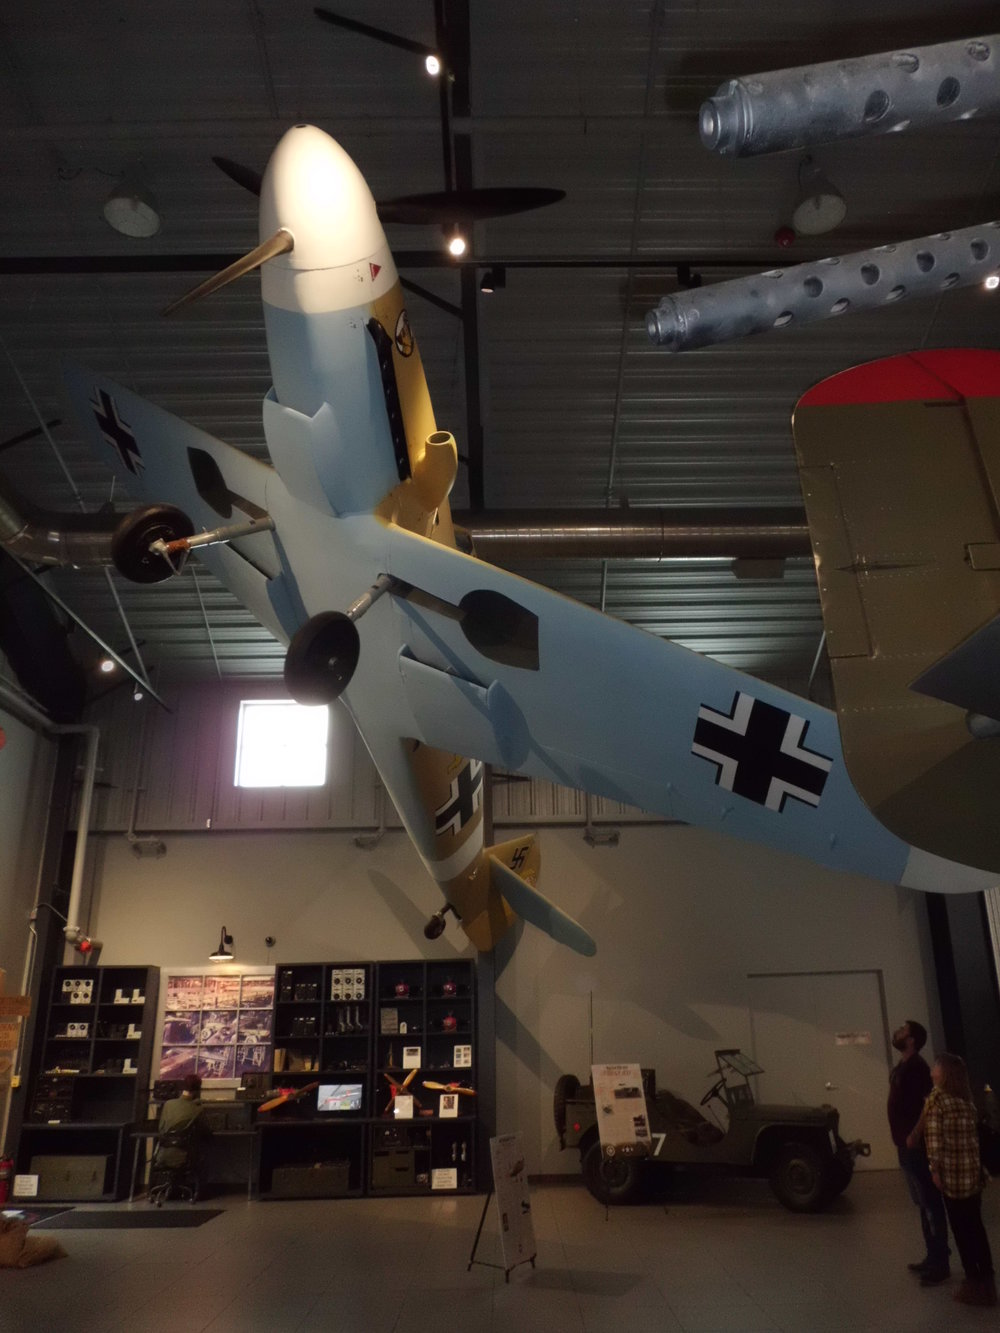 Bf 109 Ceiling Hanger. Photo 2 of 3.